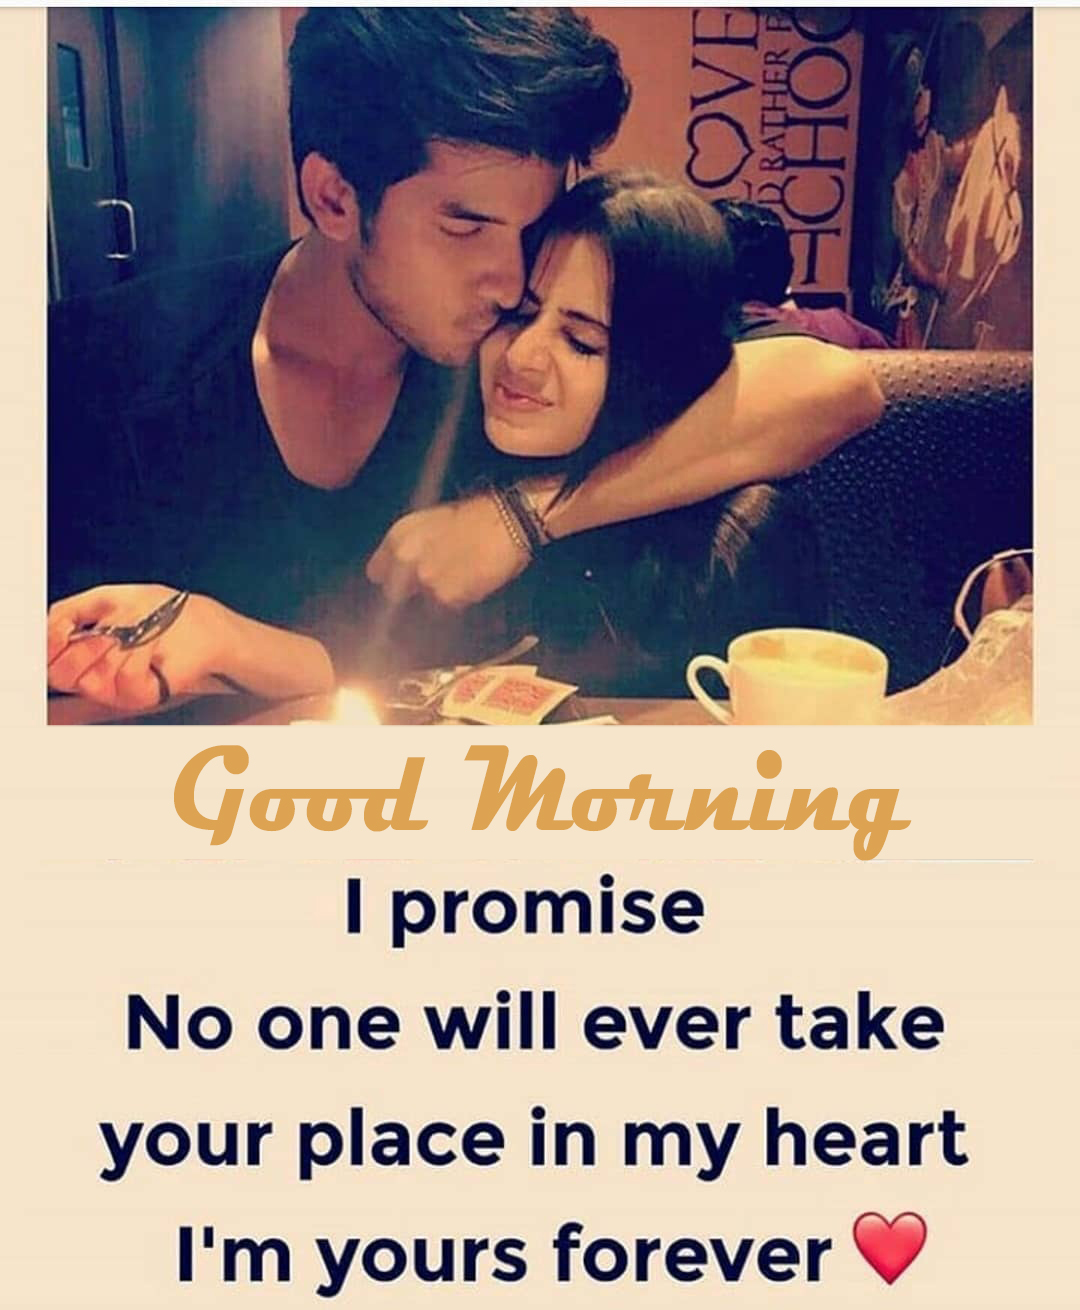 Good Morning Love Images And Messages 2020 Good Morning Images Quotes Wishes Messages Greetings Ecards